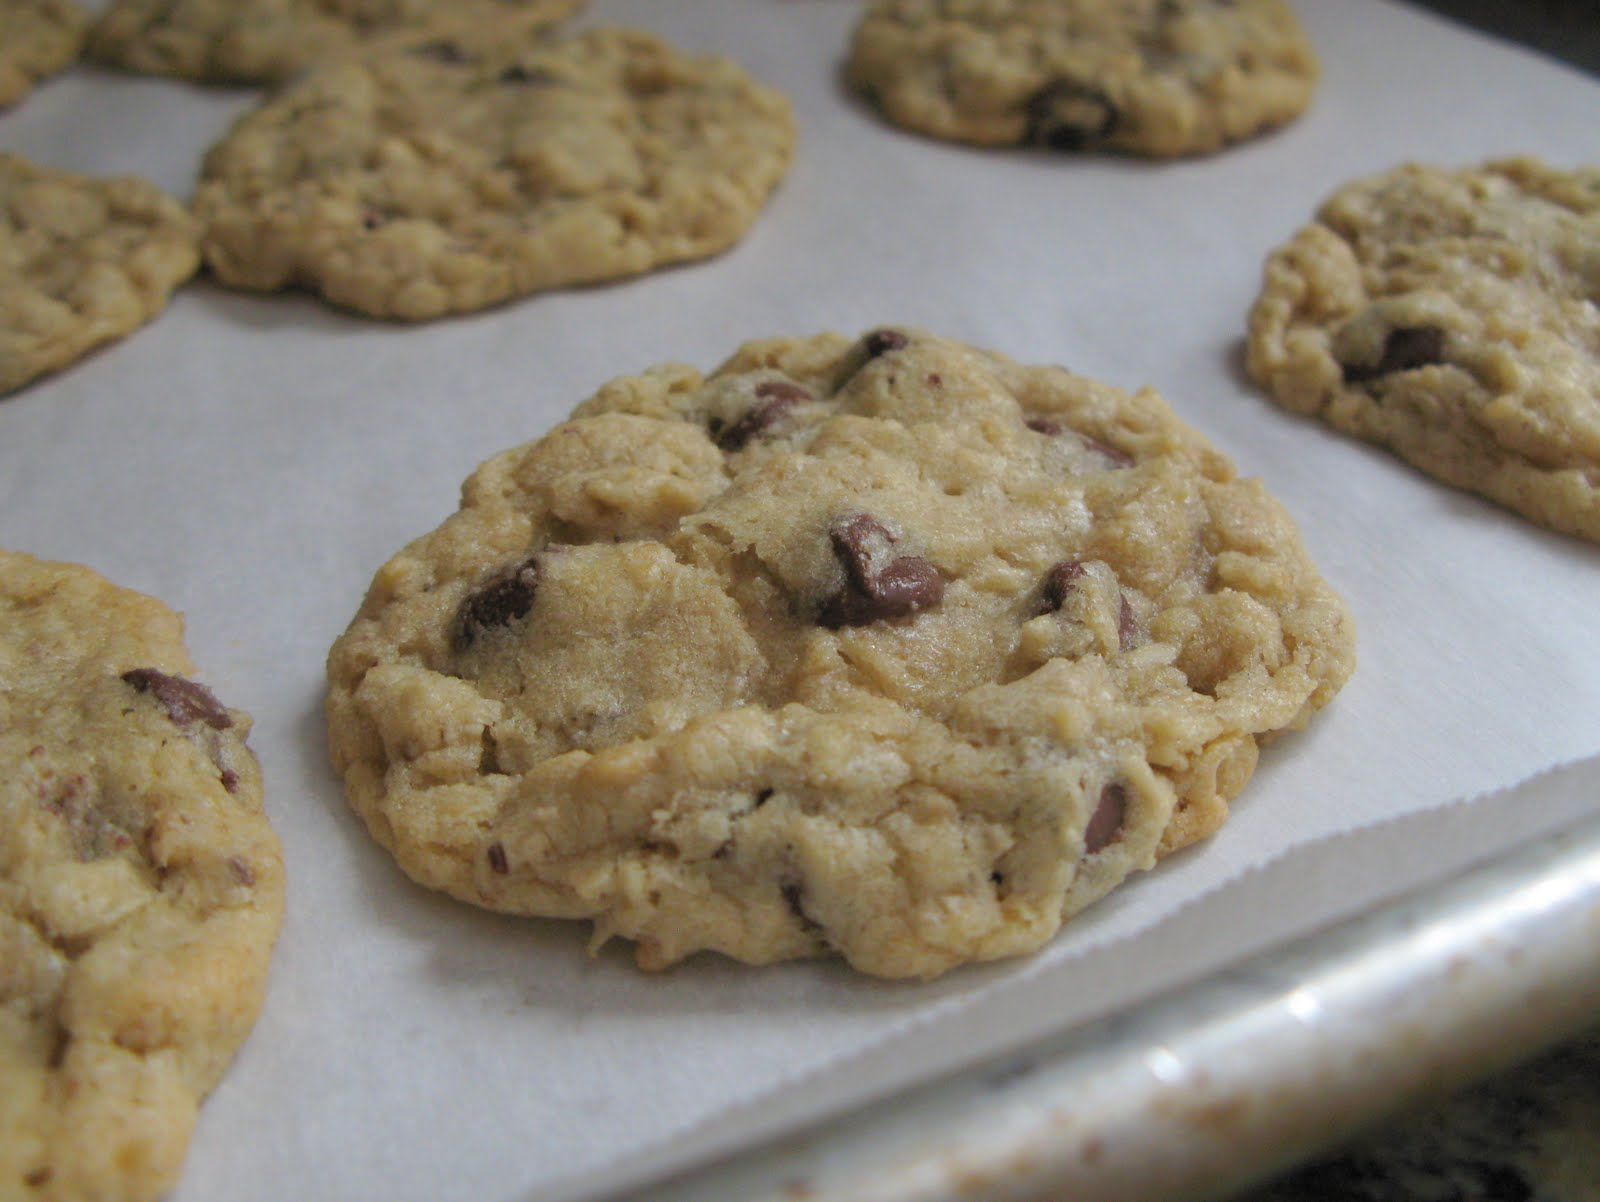 Outrageous Oatmeal Chocolate Chip Cookies